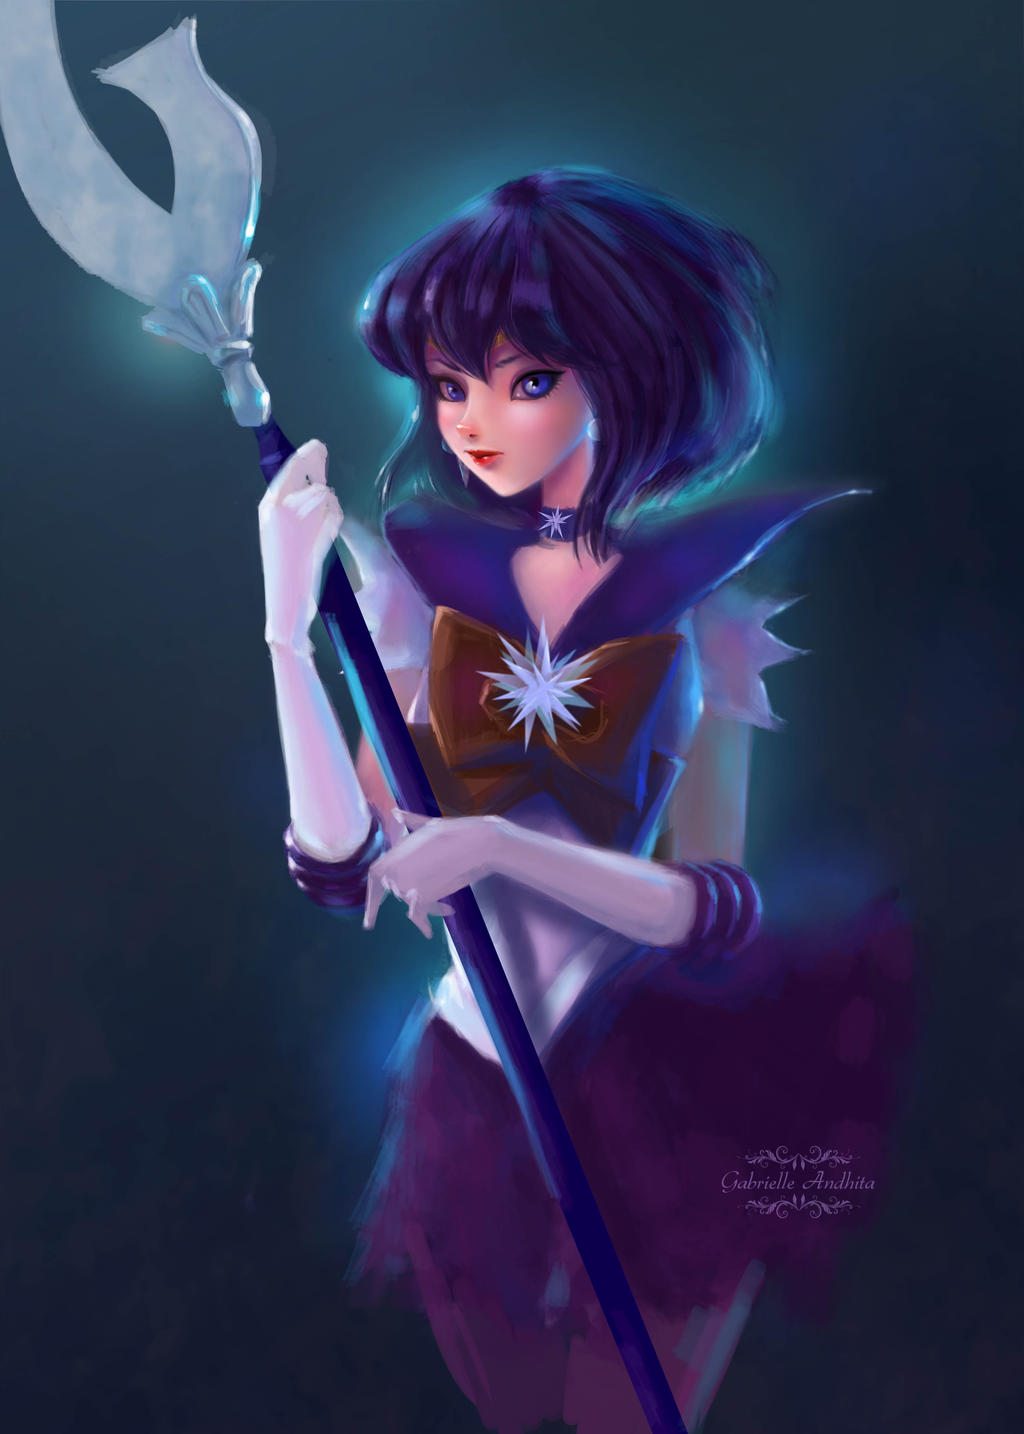 Sailor Saturn by gabrielleandhita